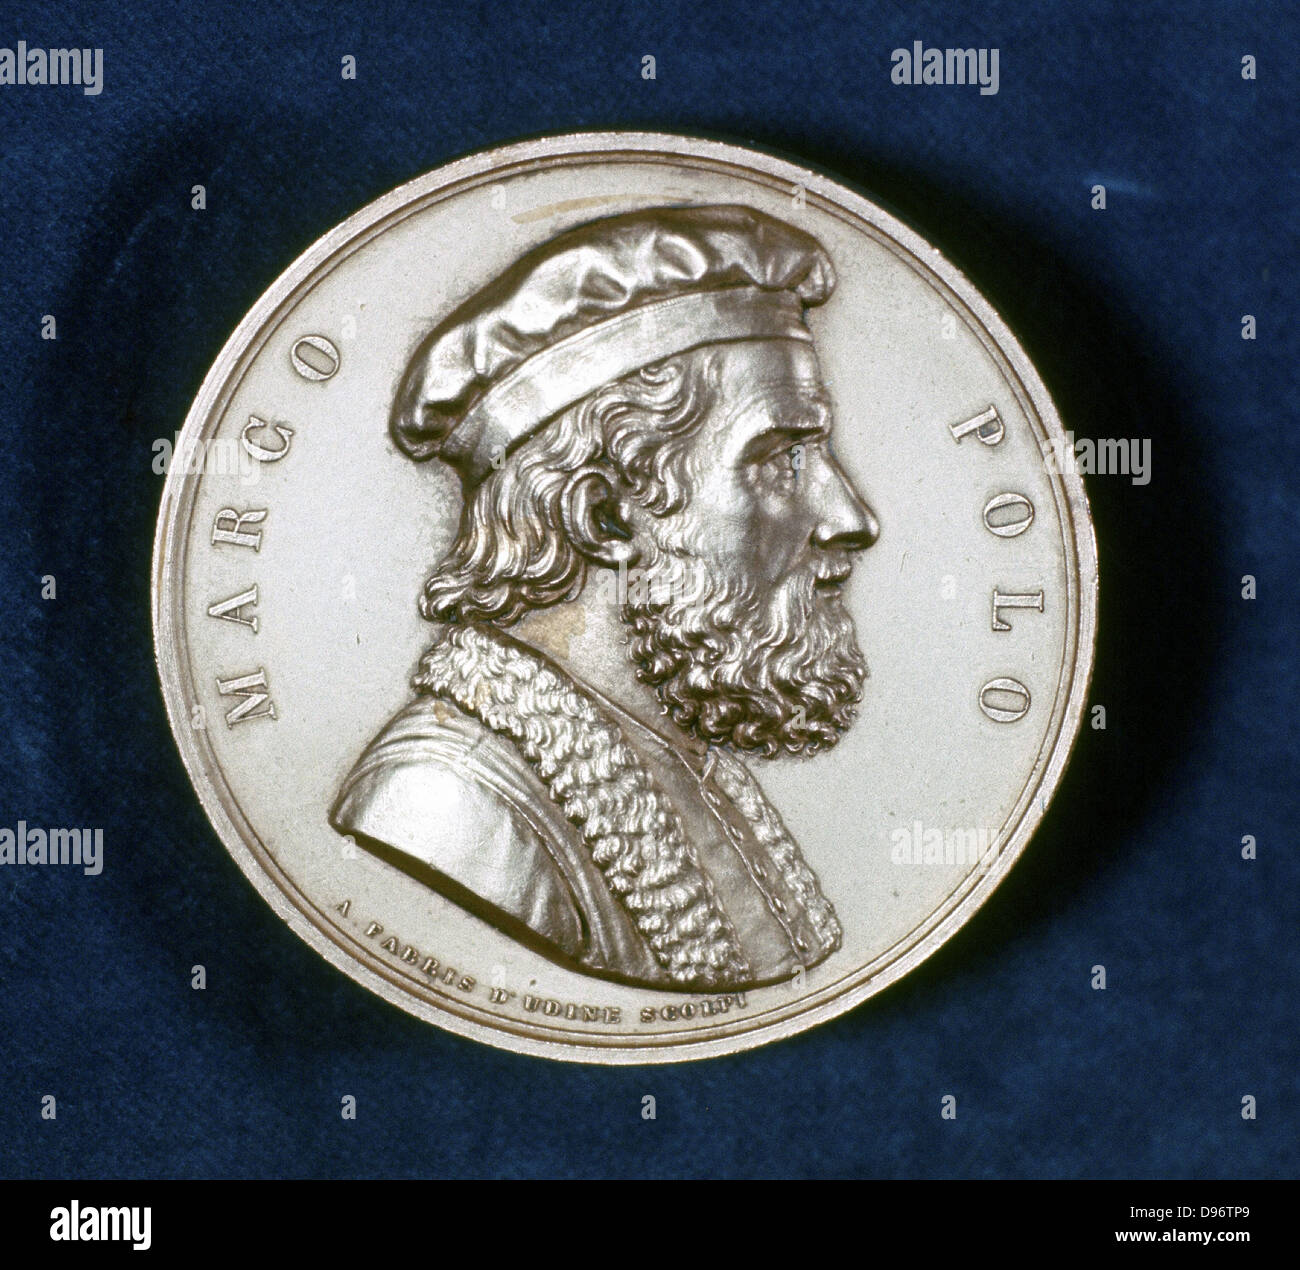 Marco Polo (1254-1324) Venetian traveller and merchant. Portrait from obverse of commemorative medal. - Stock Image